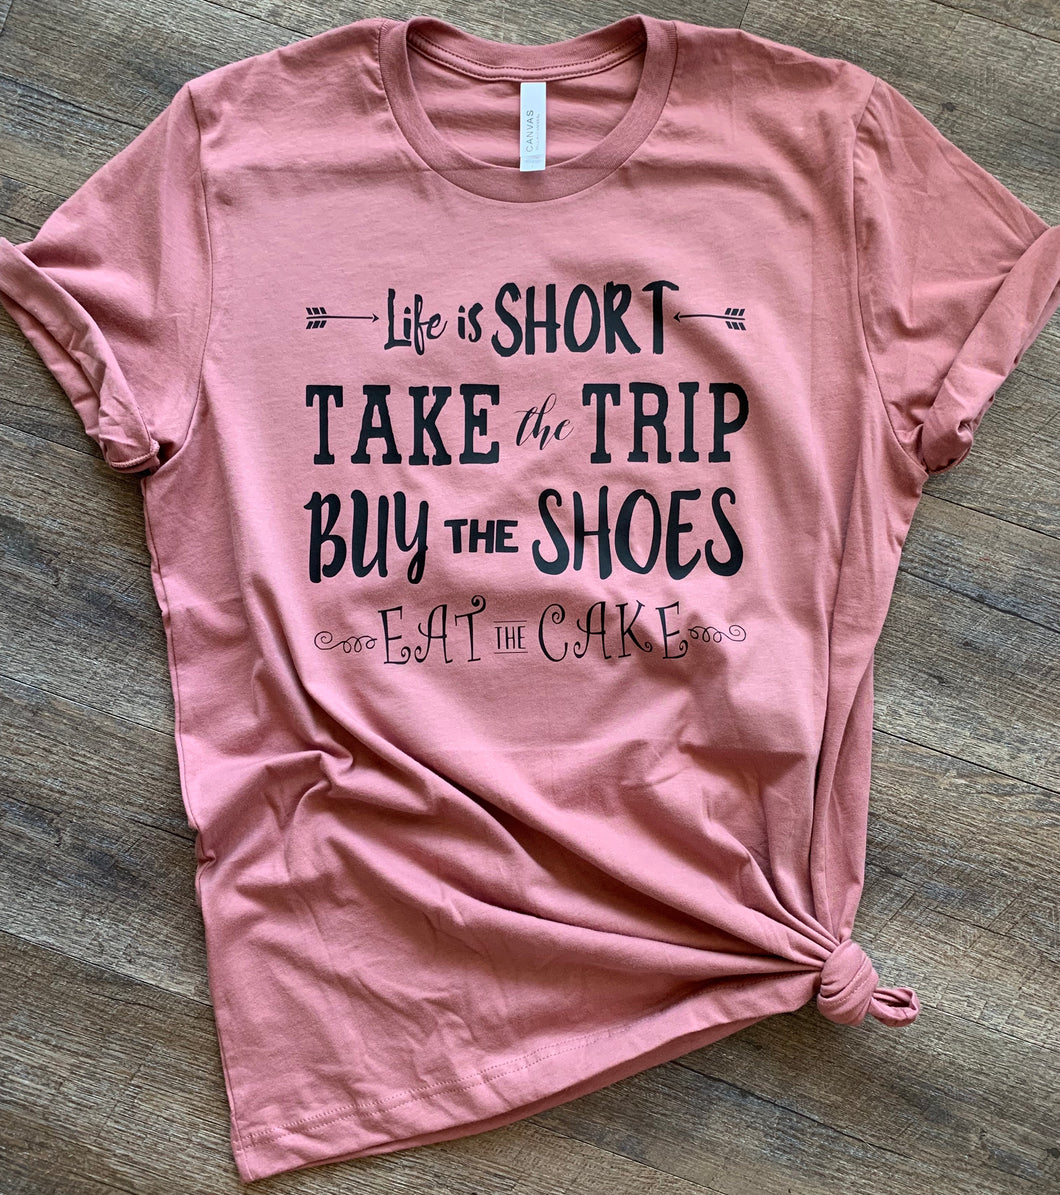 Life is short take the trip buy the shoes eat the cake // words to live by graphic shirt - Mavictoria Designs Hot Press Express